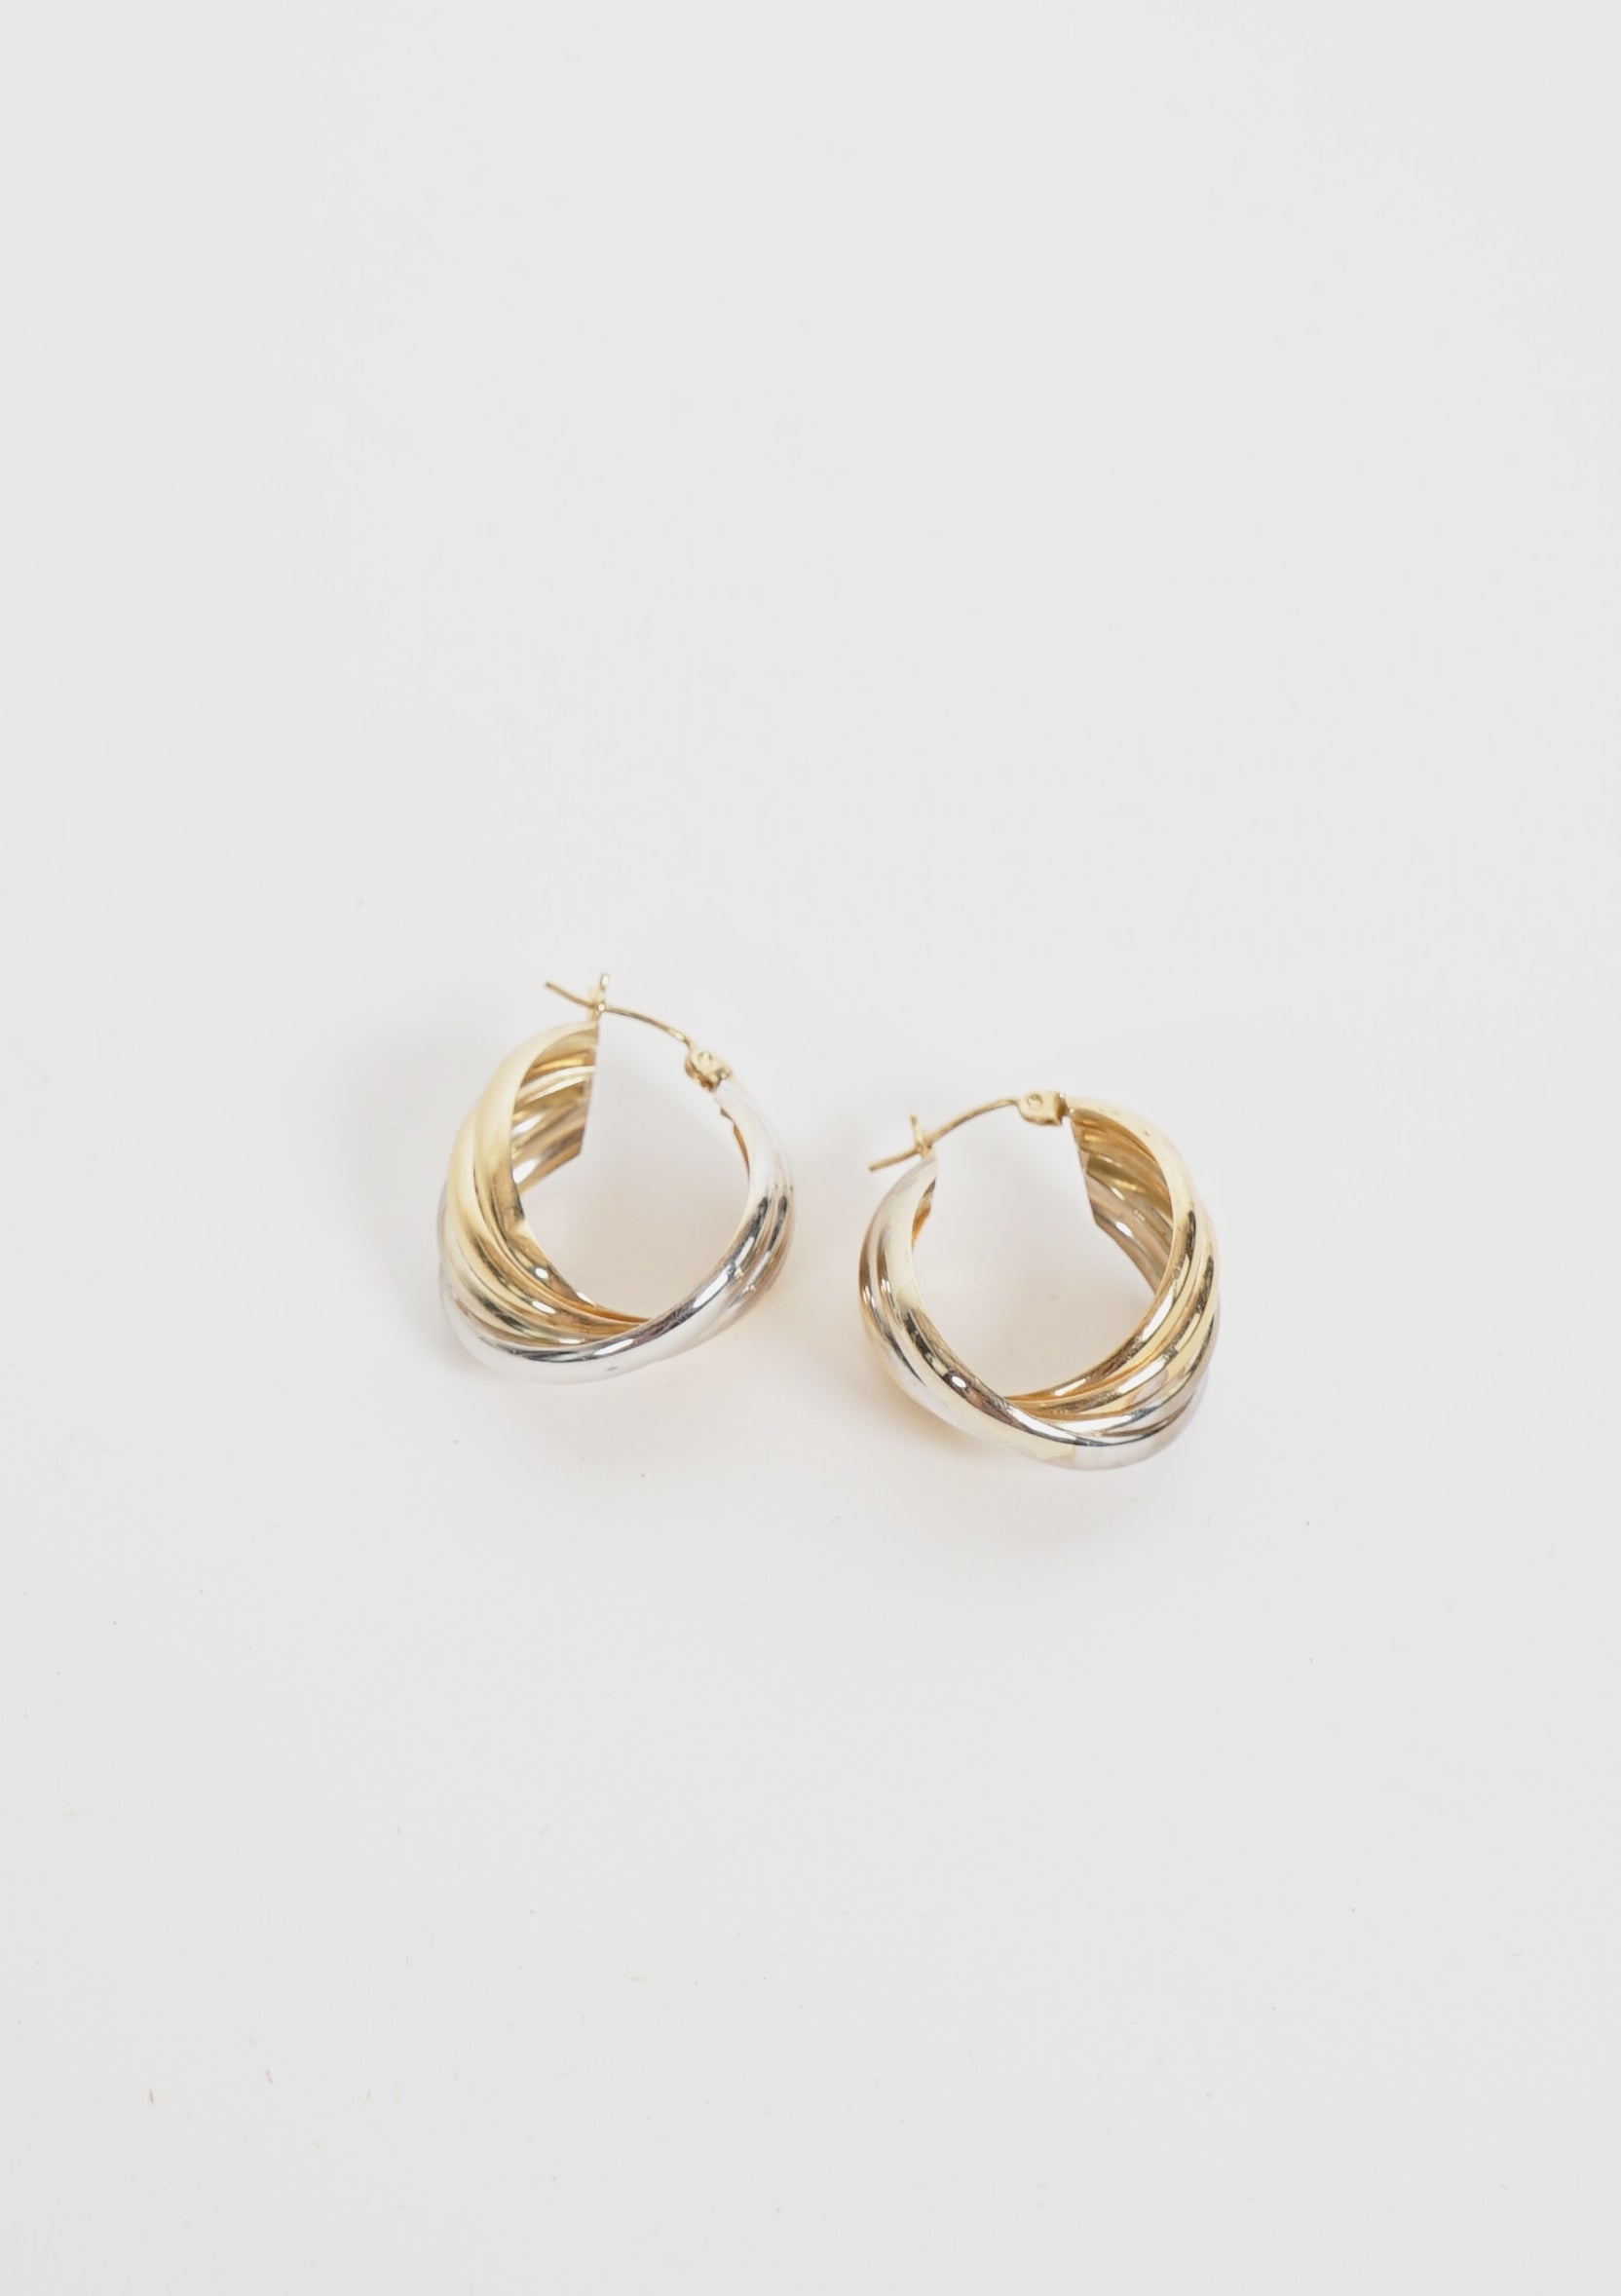 Gold / Silver Twisted Hoop Earrings